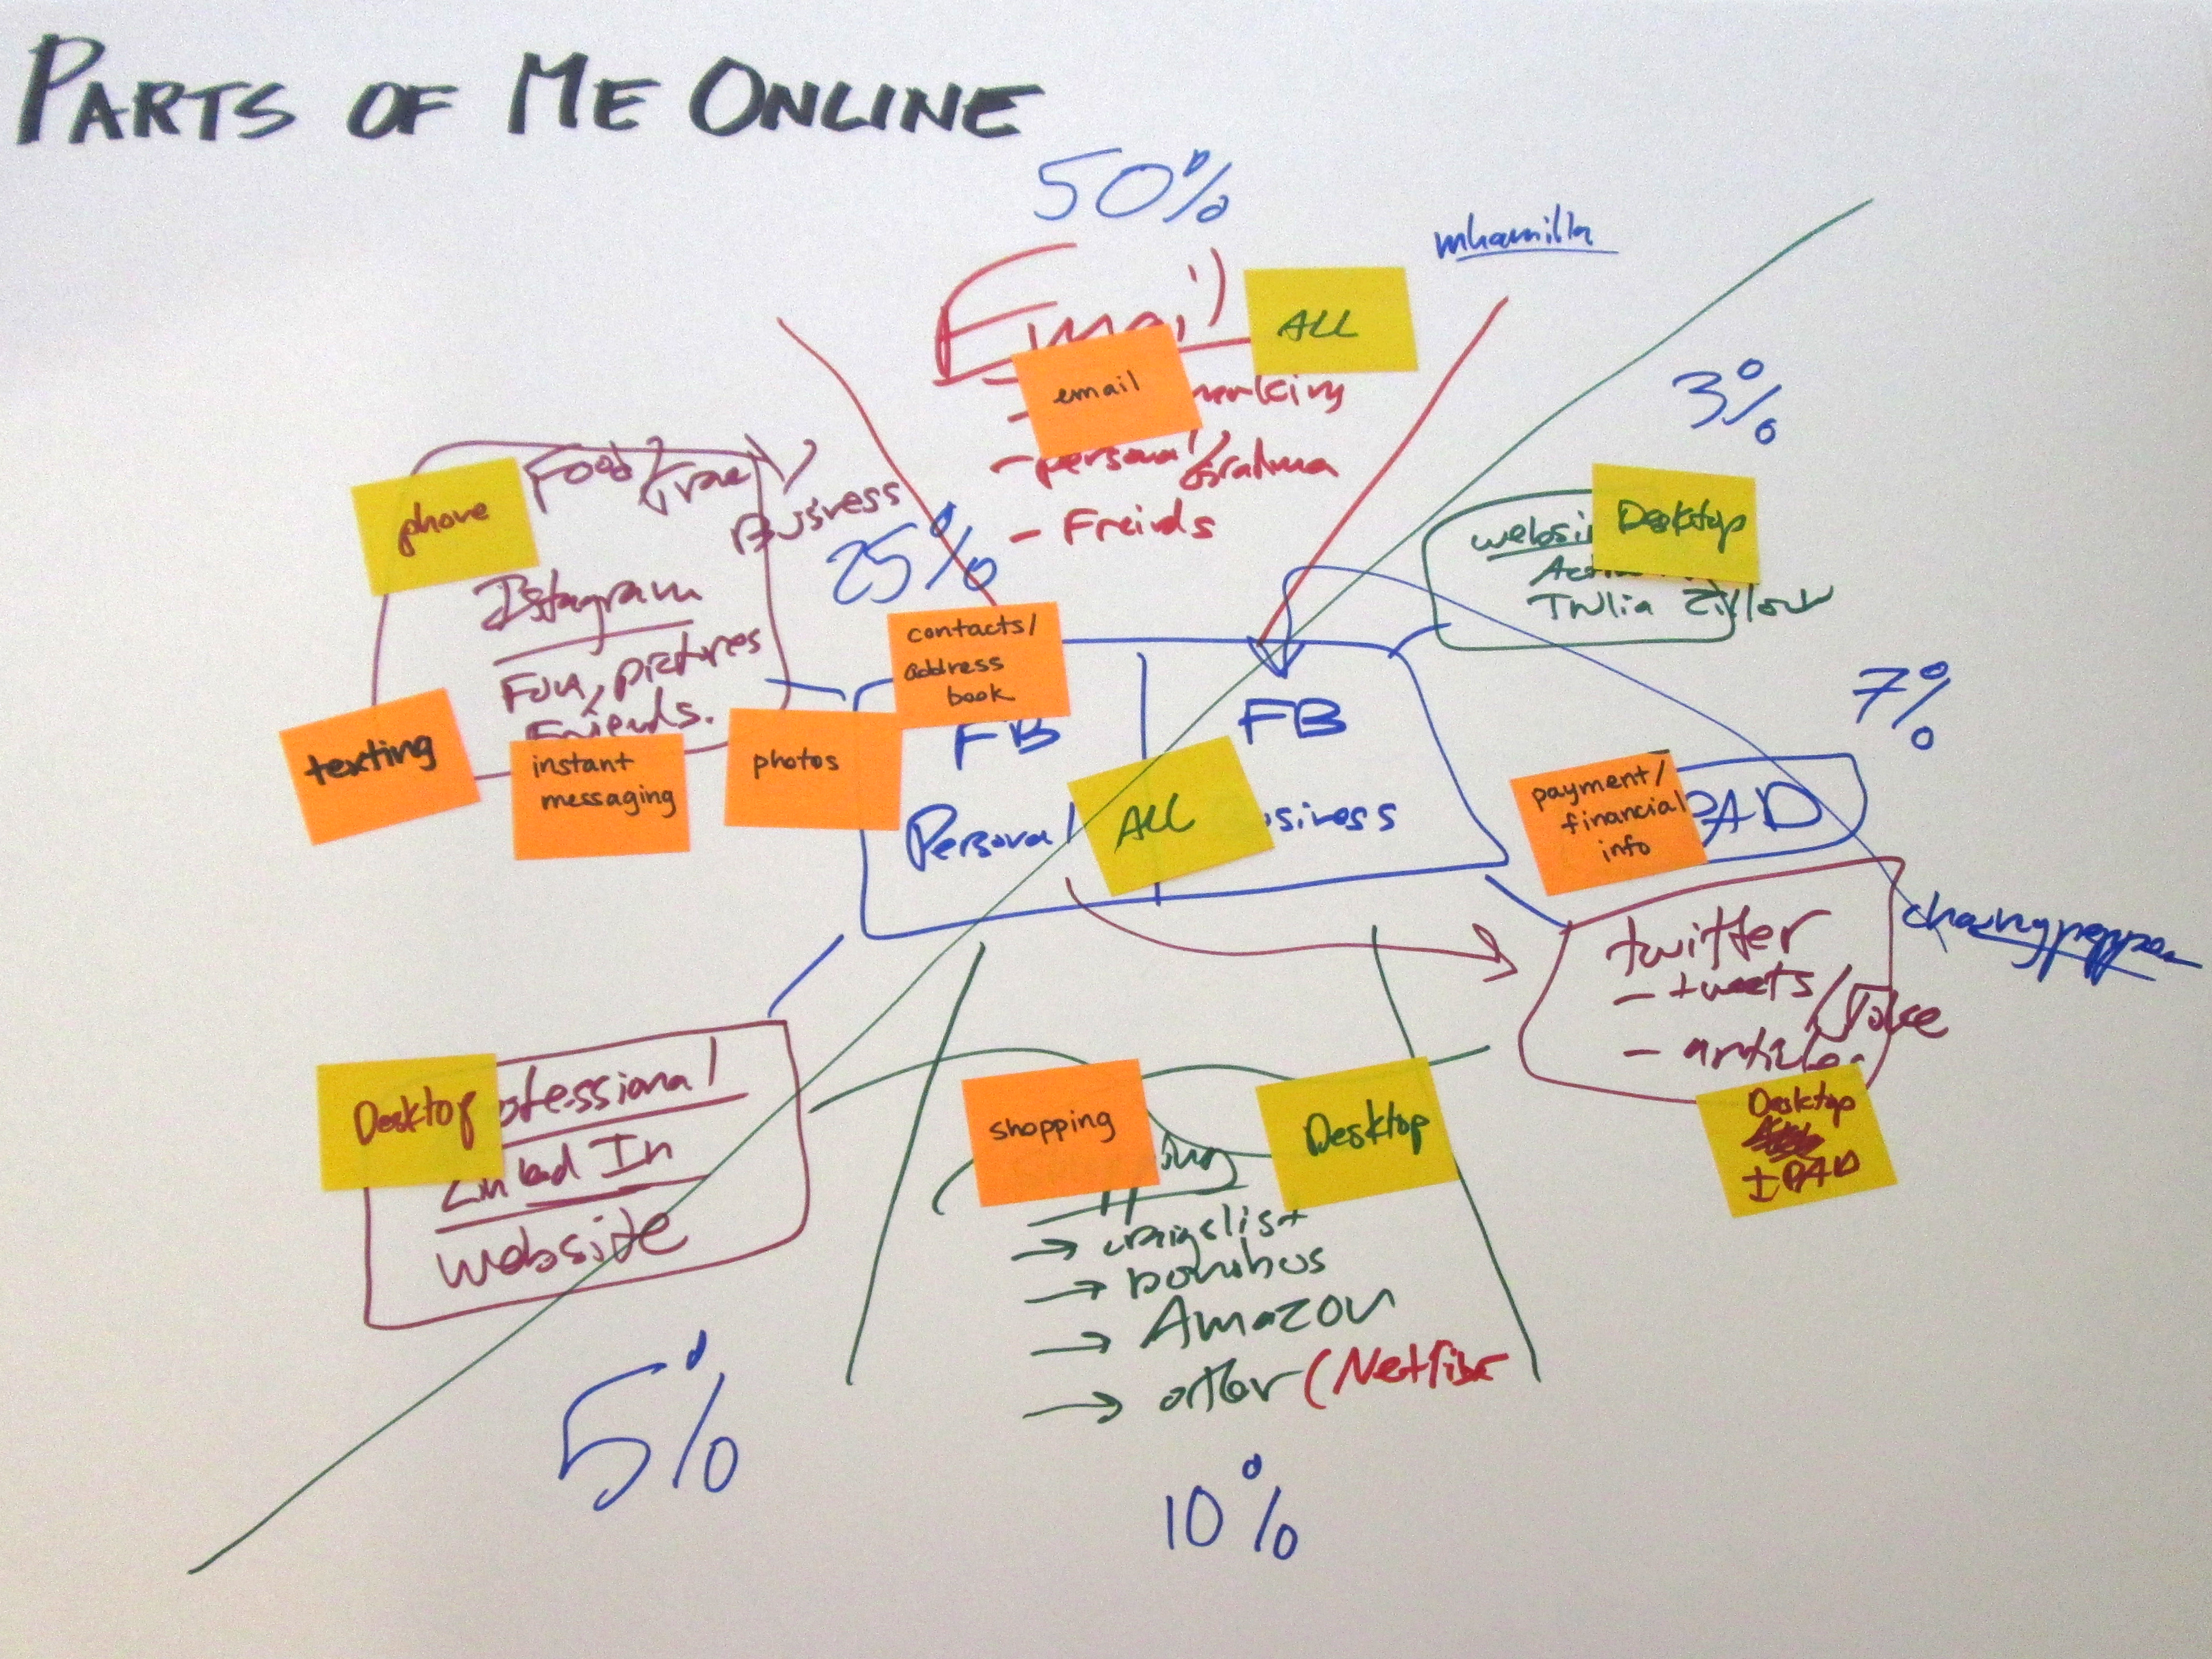 Person 3's map of his online life